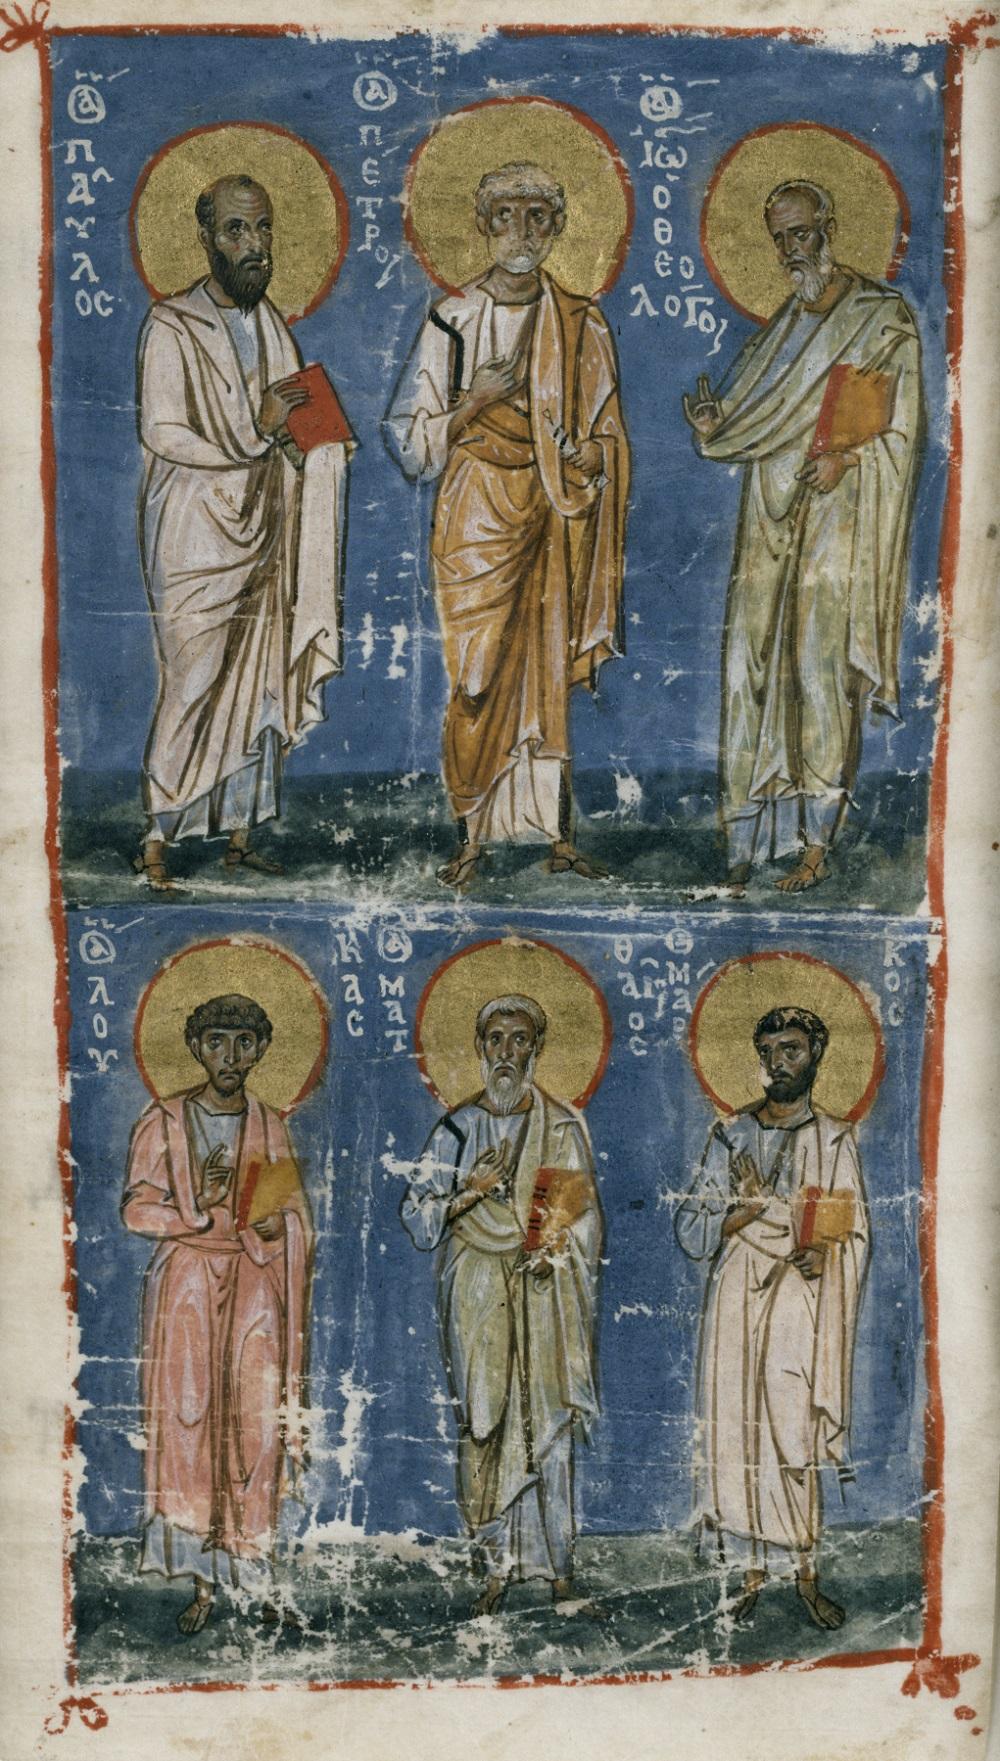 Painted Miniature, with Paul, Peter, and the Evangelists | Tempera on Parchment, Byzantine Empire (ca.1070-1100) |  Image Source